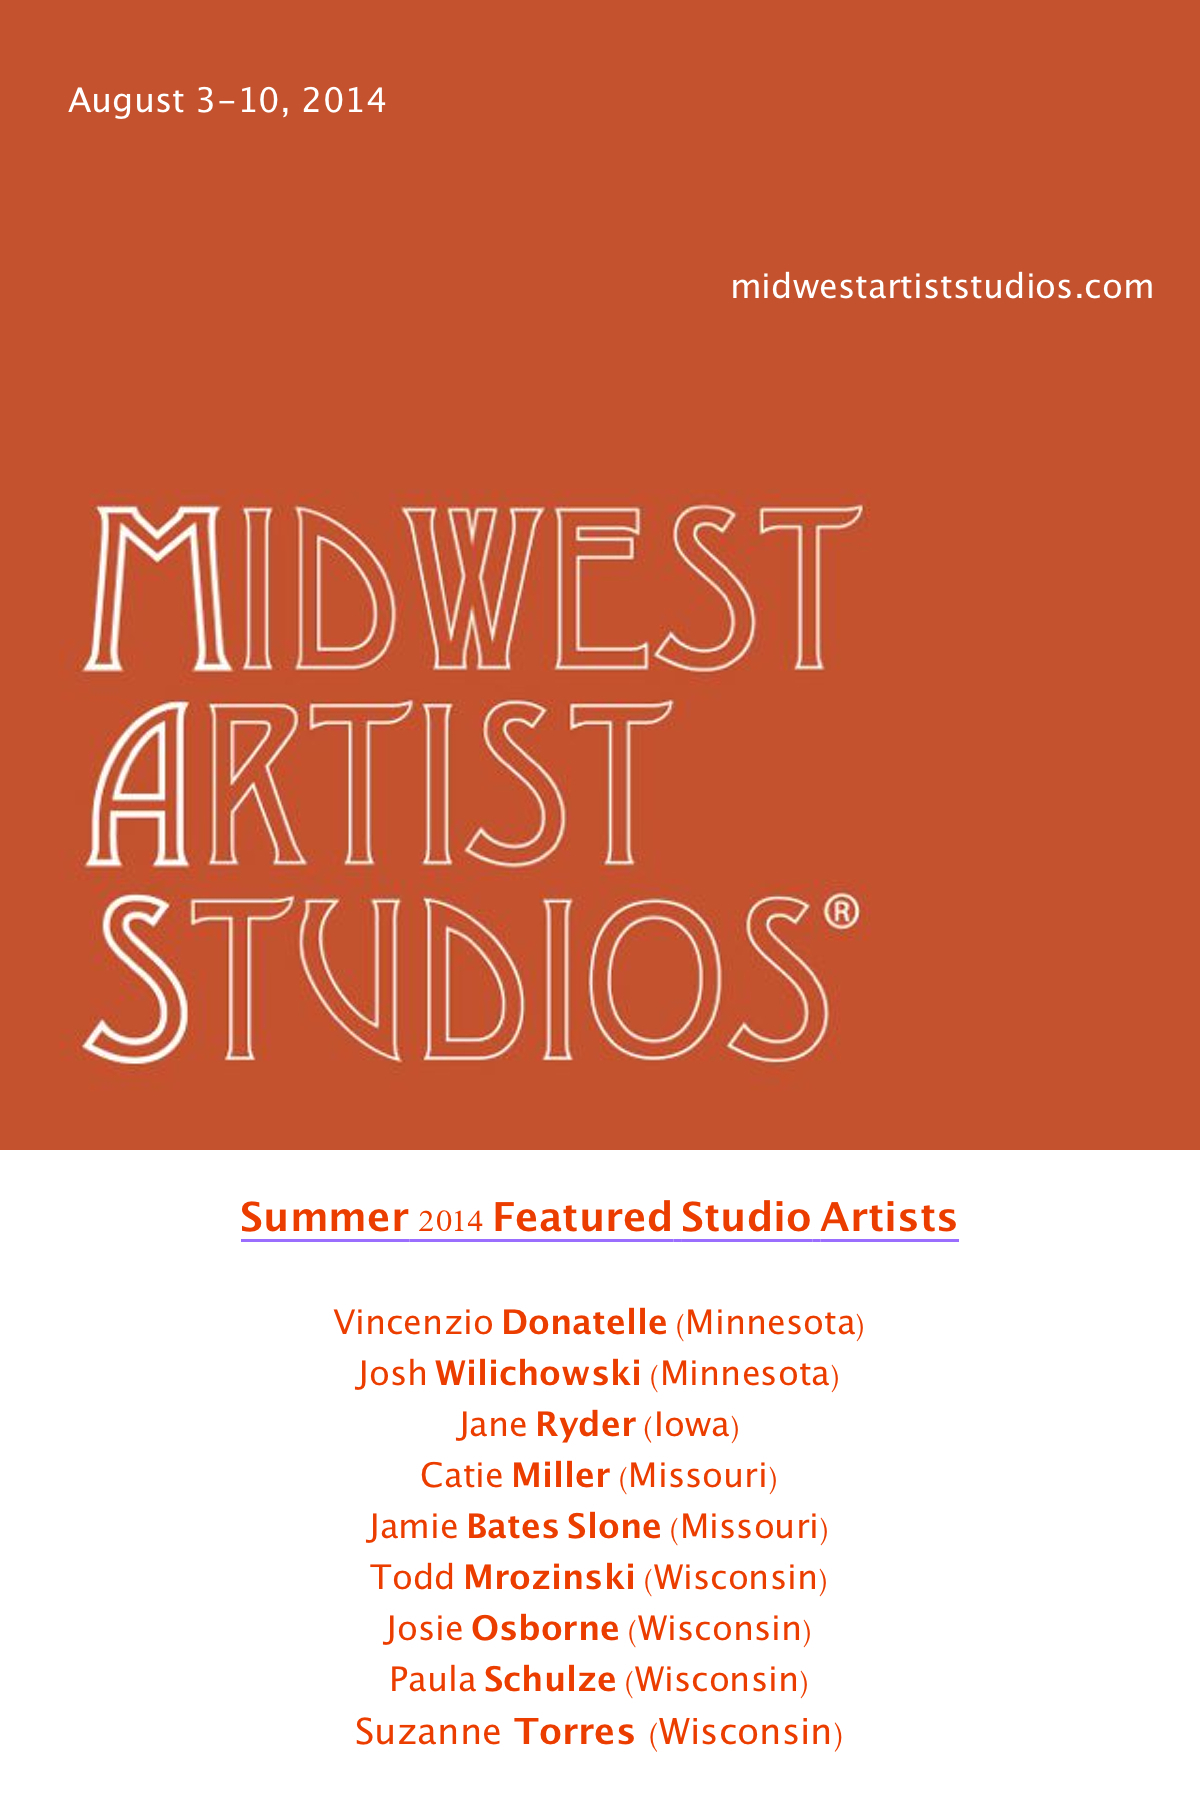 MIDWEST ARTIST STUDIOS ™ PROJECT